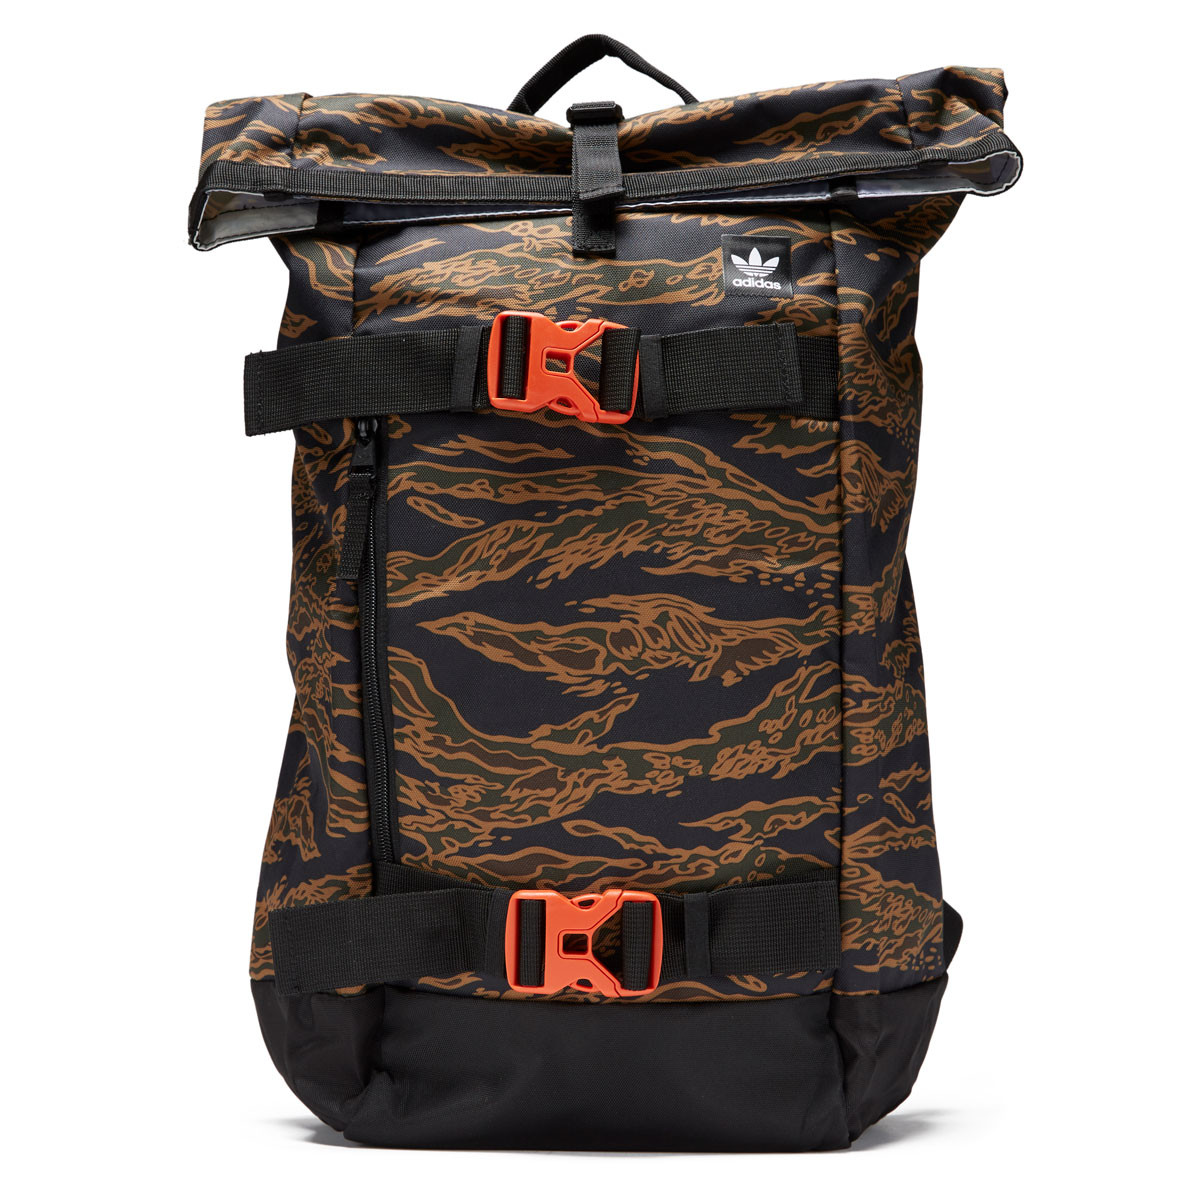 Adidas Strapped Caisson Backpack - Night Cargo Tiger Camo Orange bc1465bdd5d69